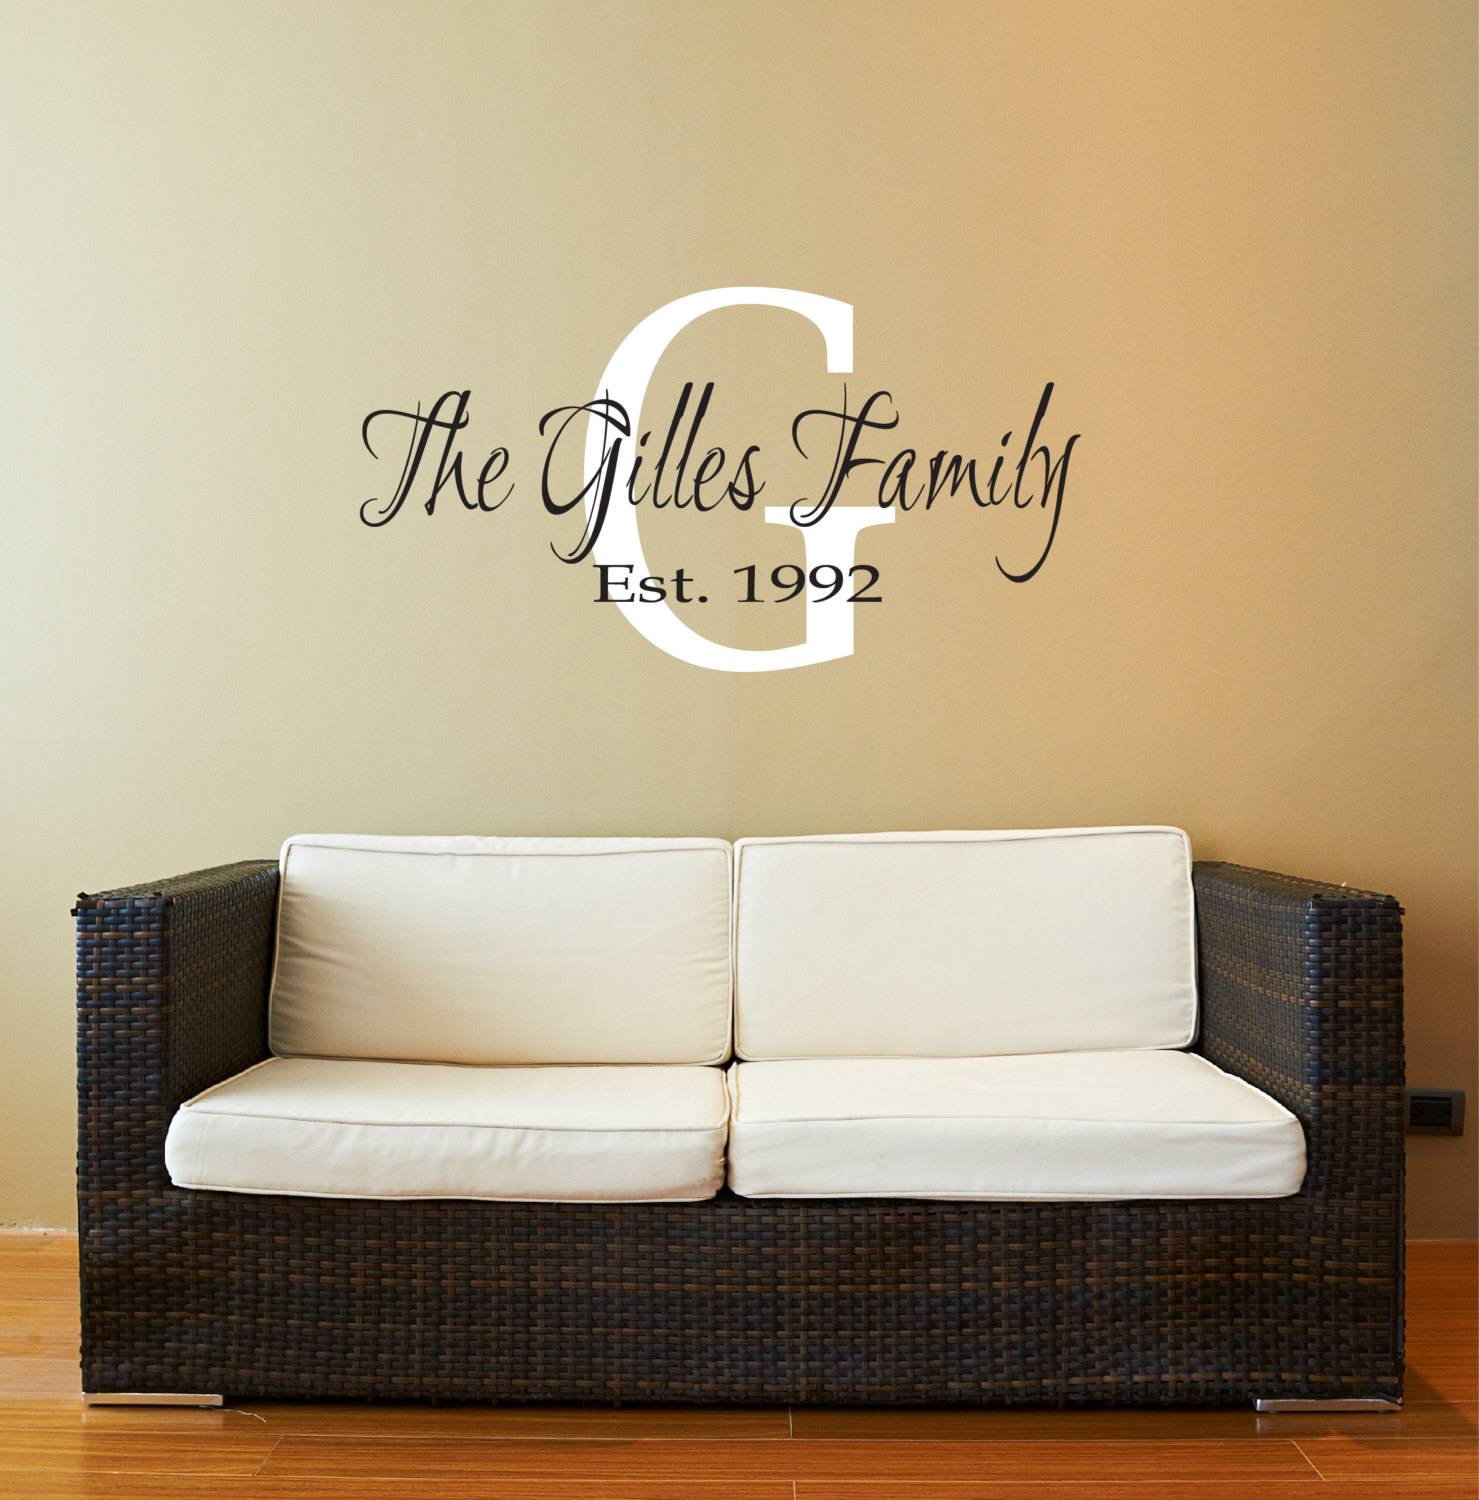 Fancy I um smitten over the Family Name Decal What classic elegance this would add to your home